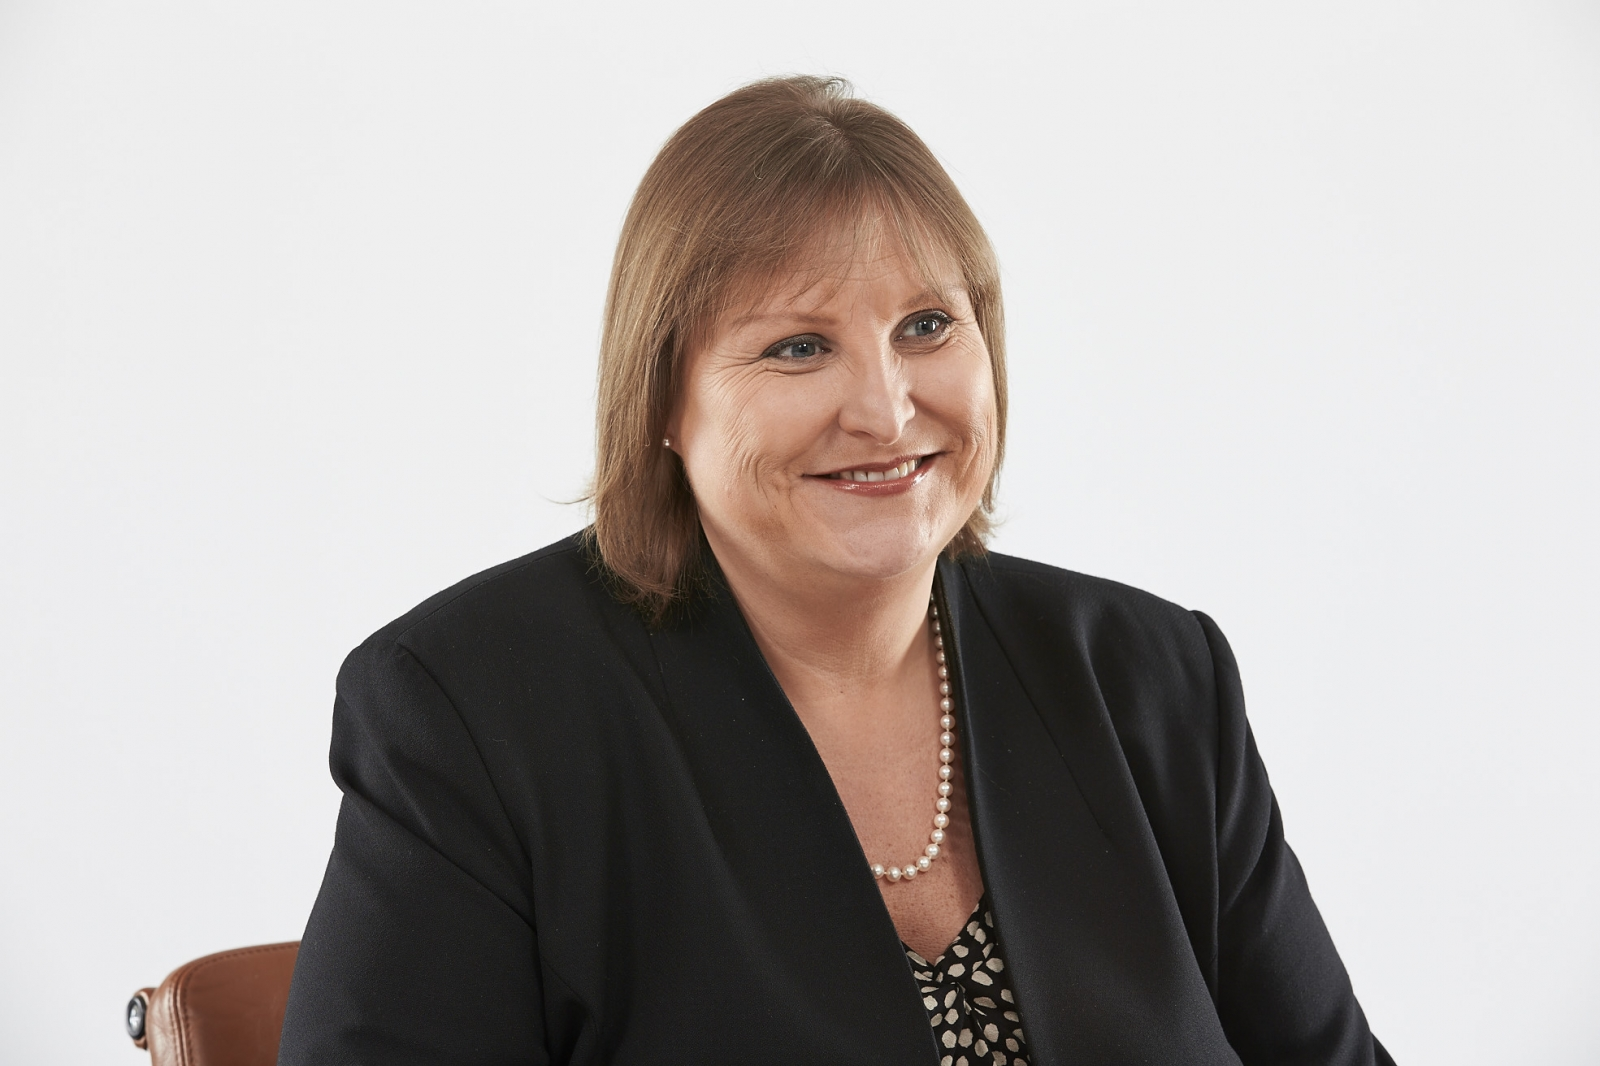 Alison Brittain, new Whitbread CEO